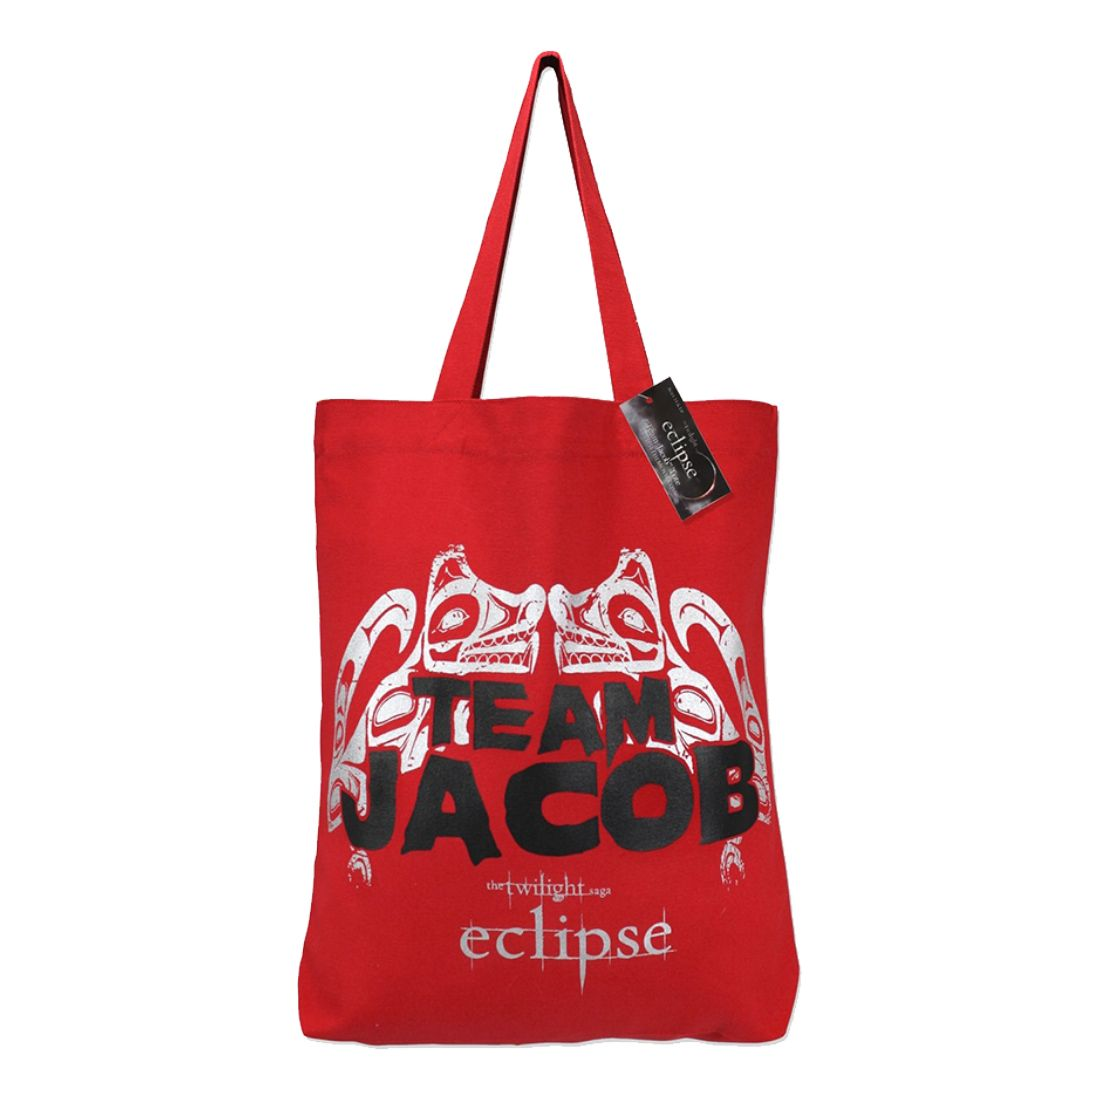 Eclipse Tote Bag Team Jacob